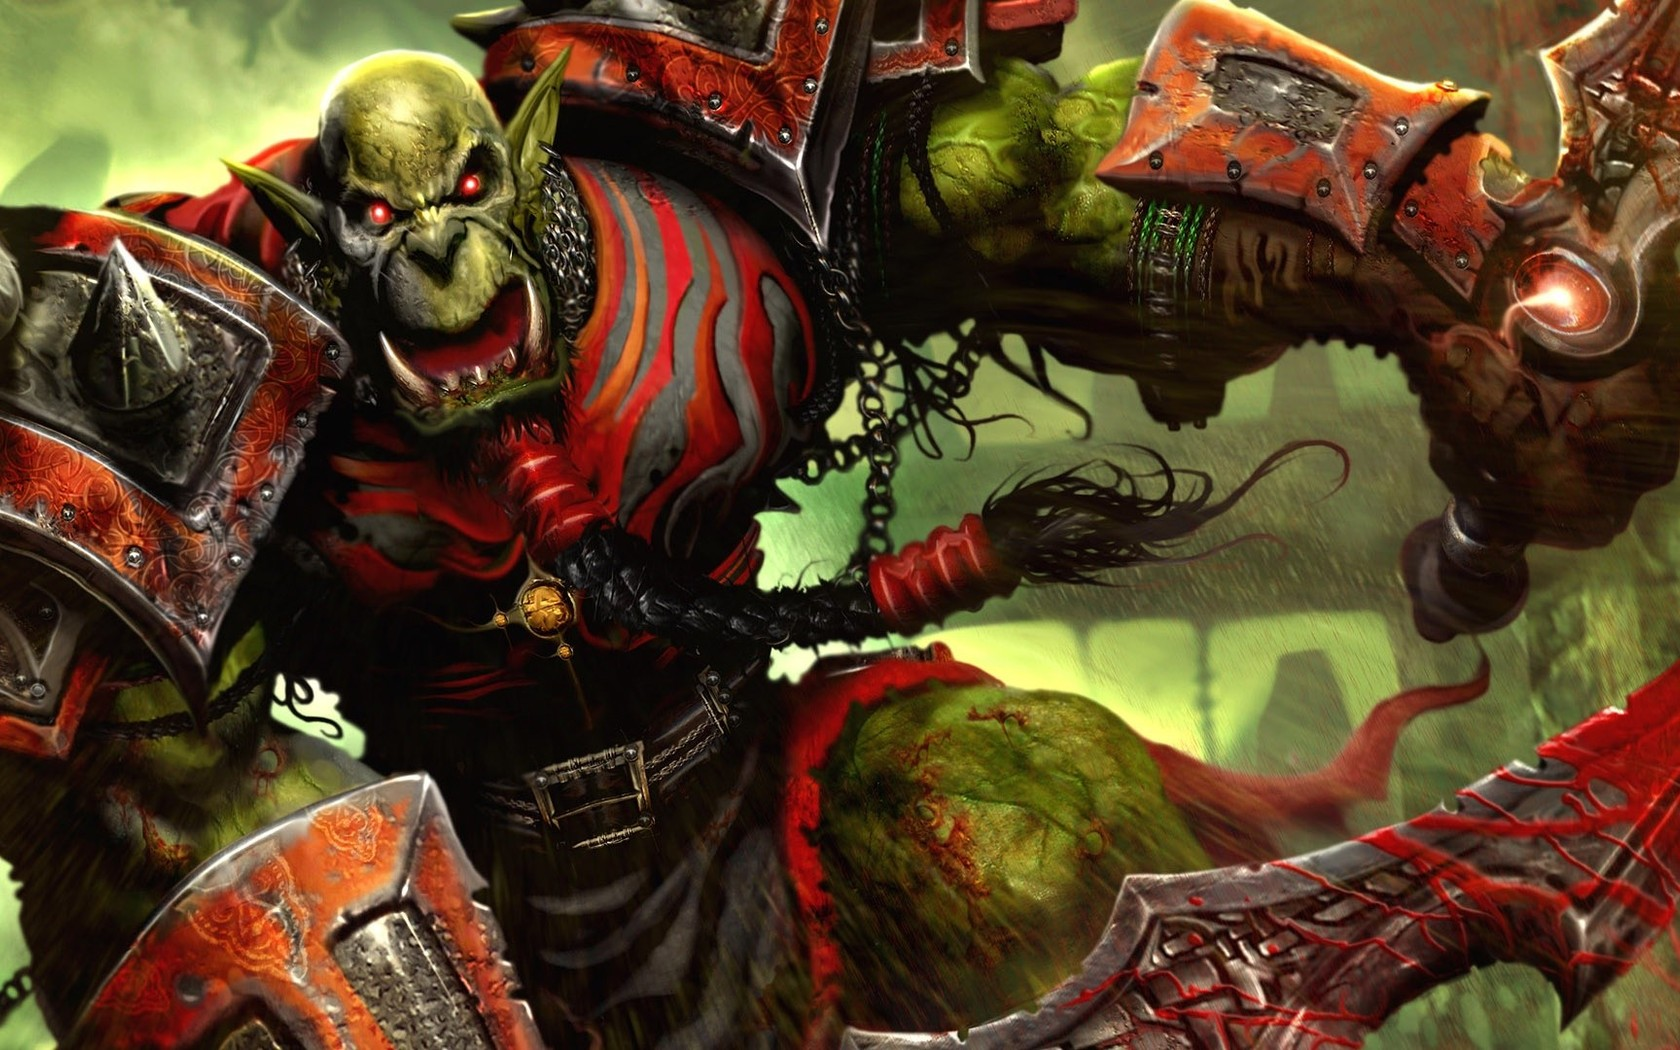 World of Warcraft orc wallpaper 9505 1680x1050